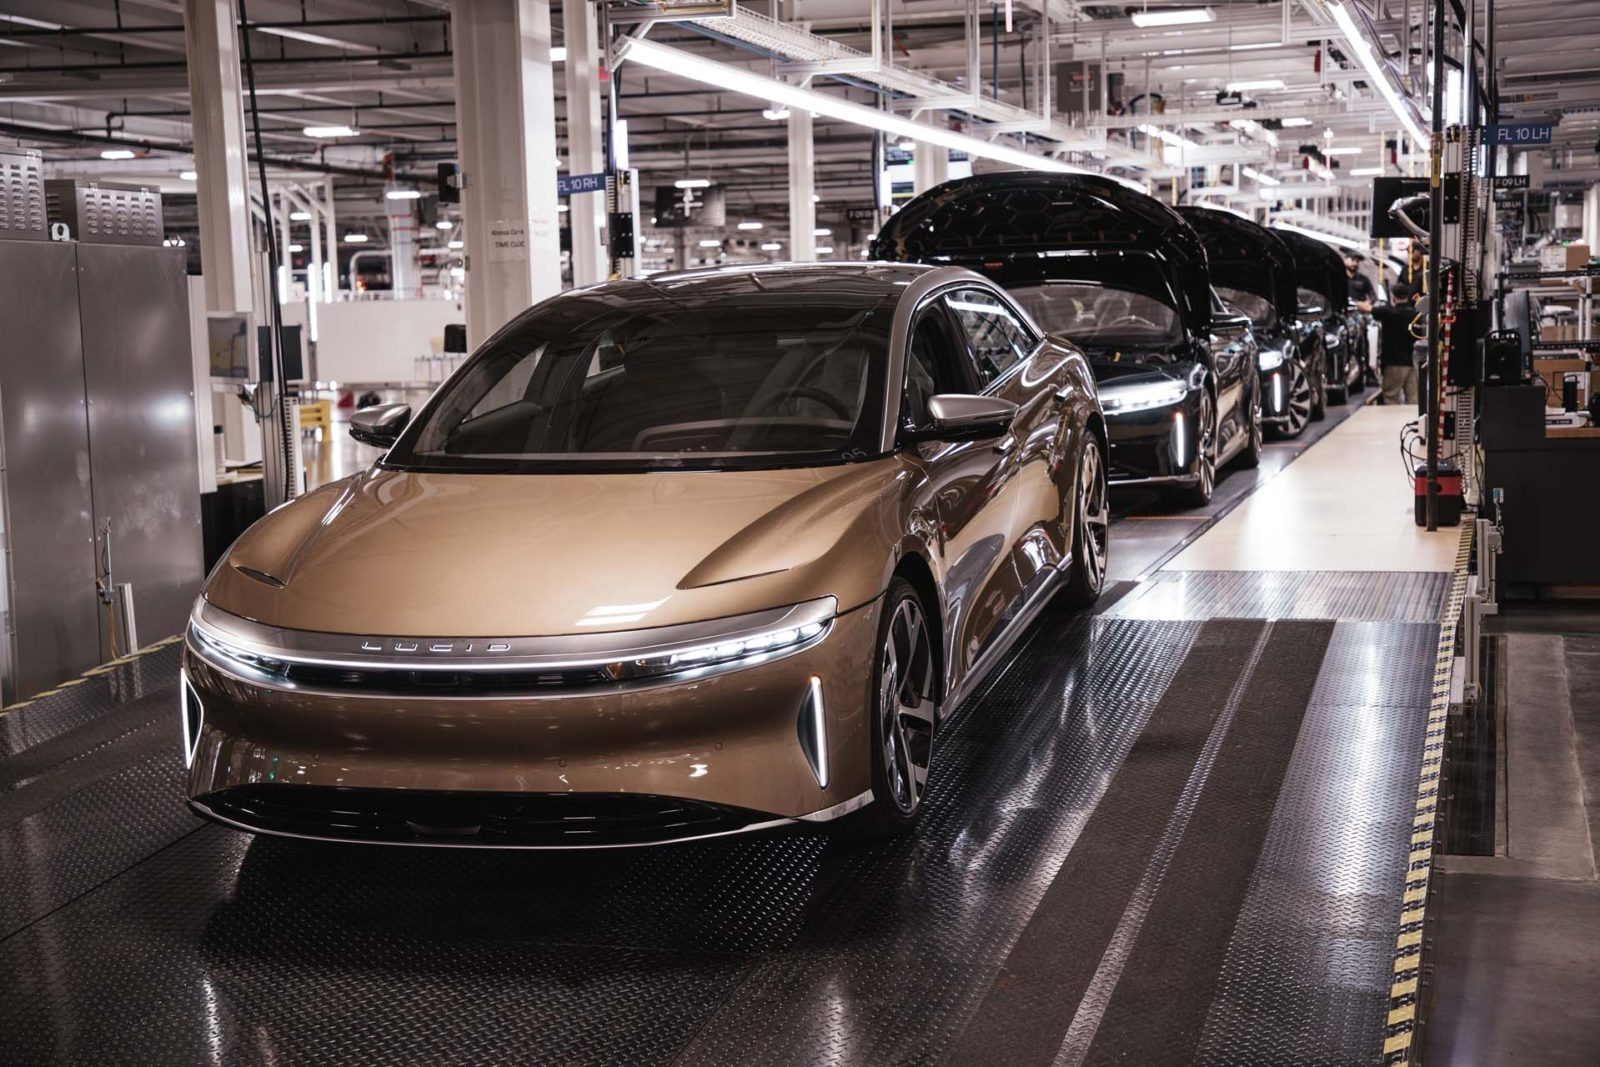 first-production-lucid-air-rolls-off-assembly-line,-customer-deliveries-begin-in-october